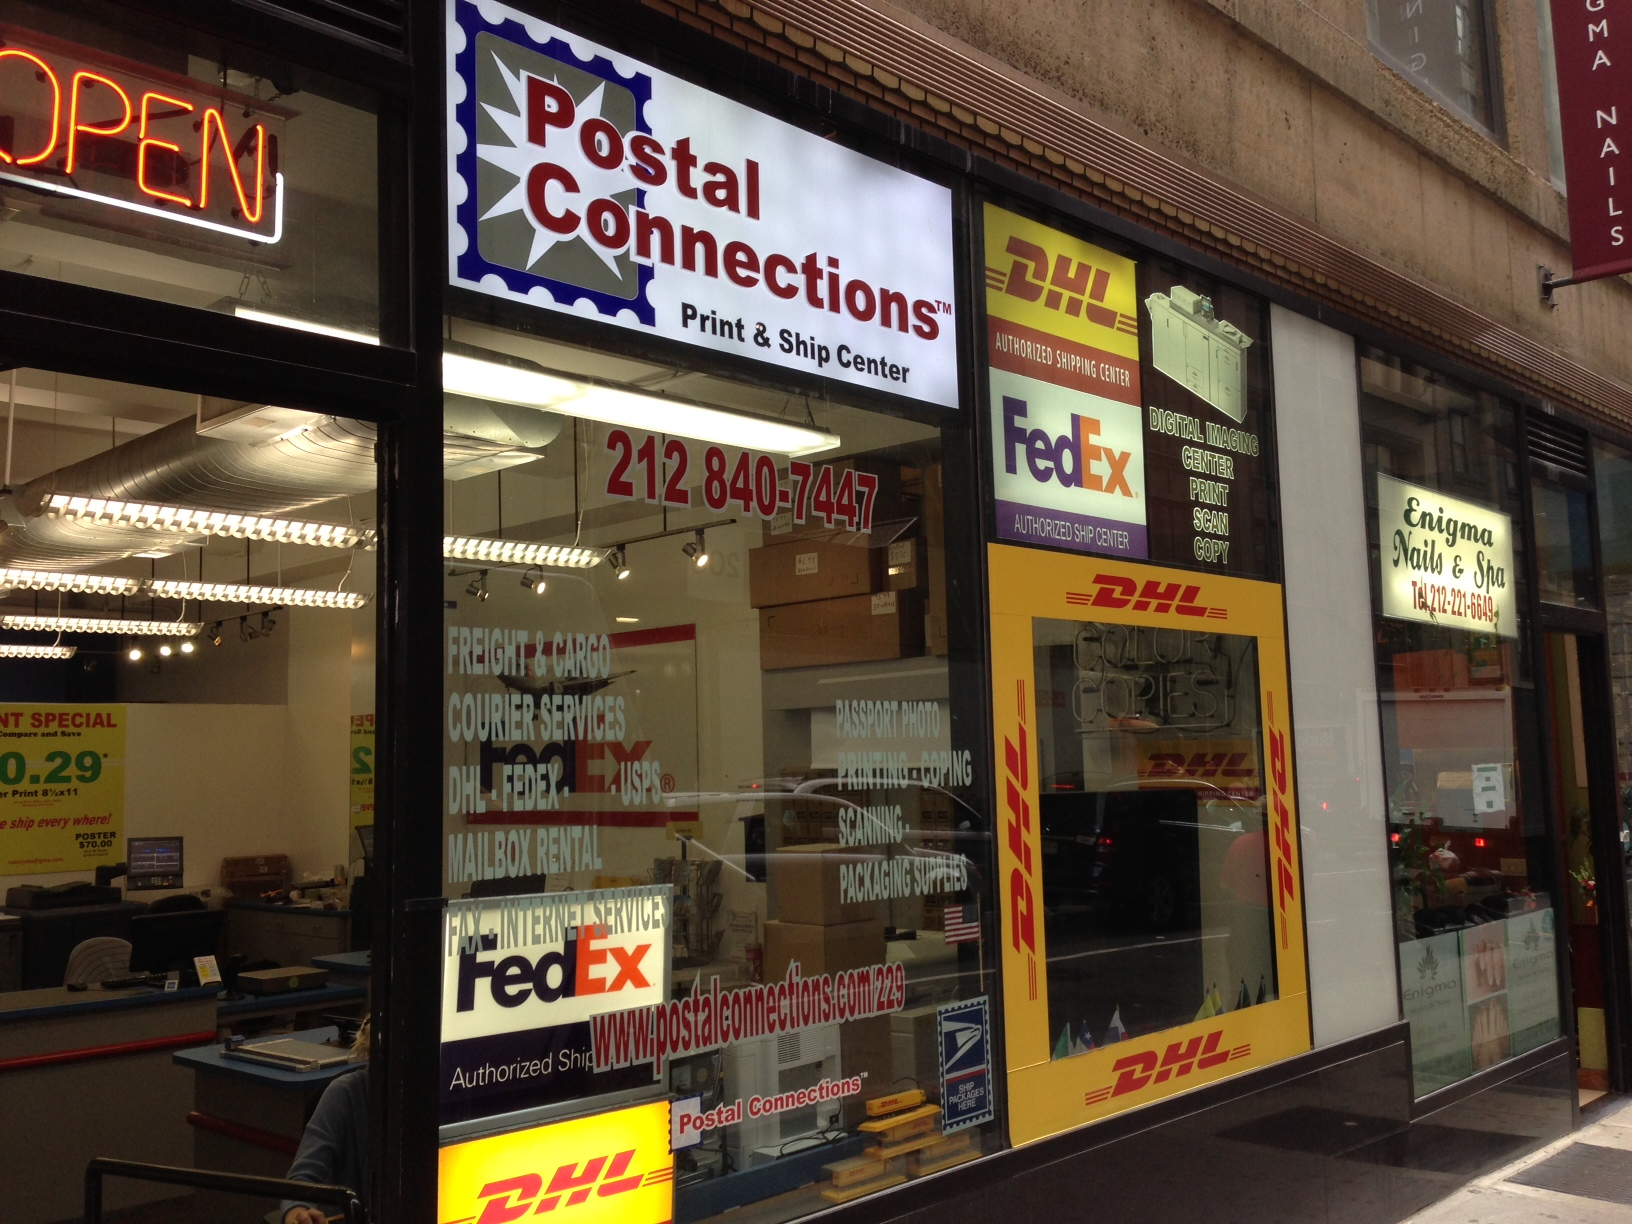 postal connections dhl express at 200 w 39th street new york ny on fave. Black Bedroom Furniture Sets. Home Design Ideas